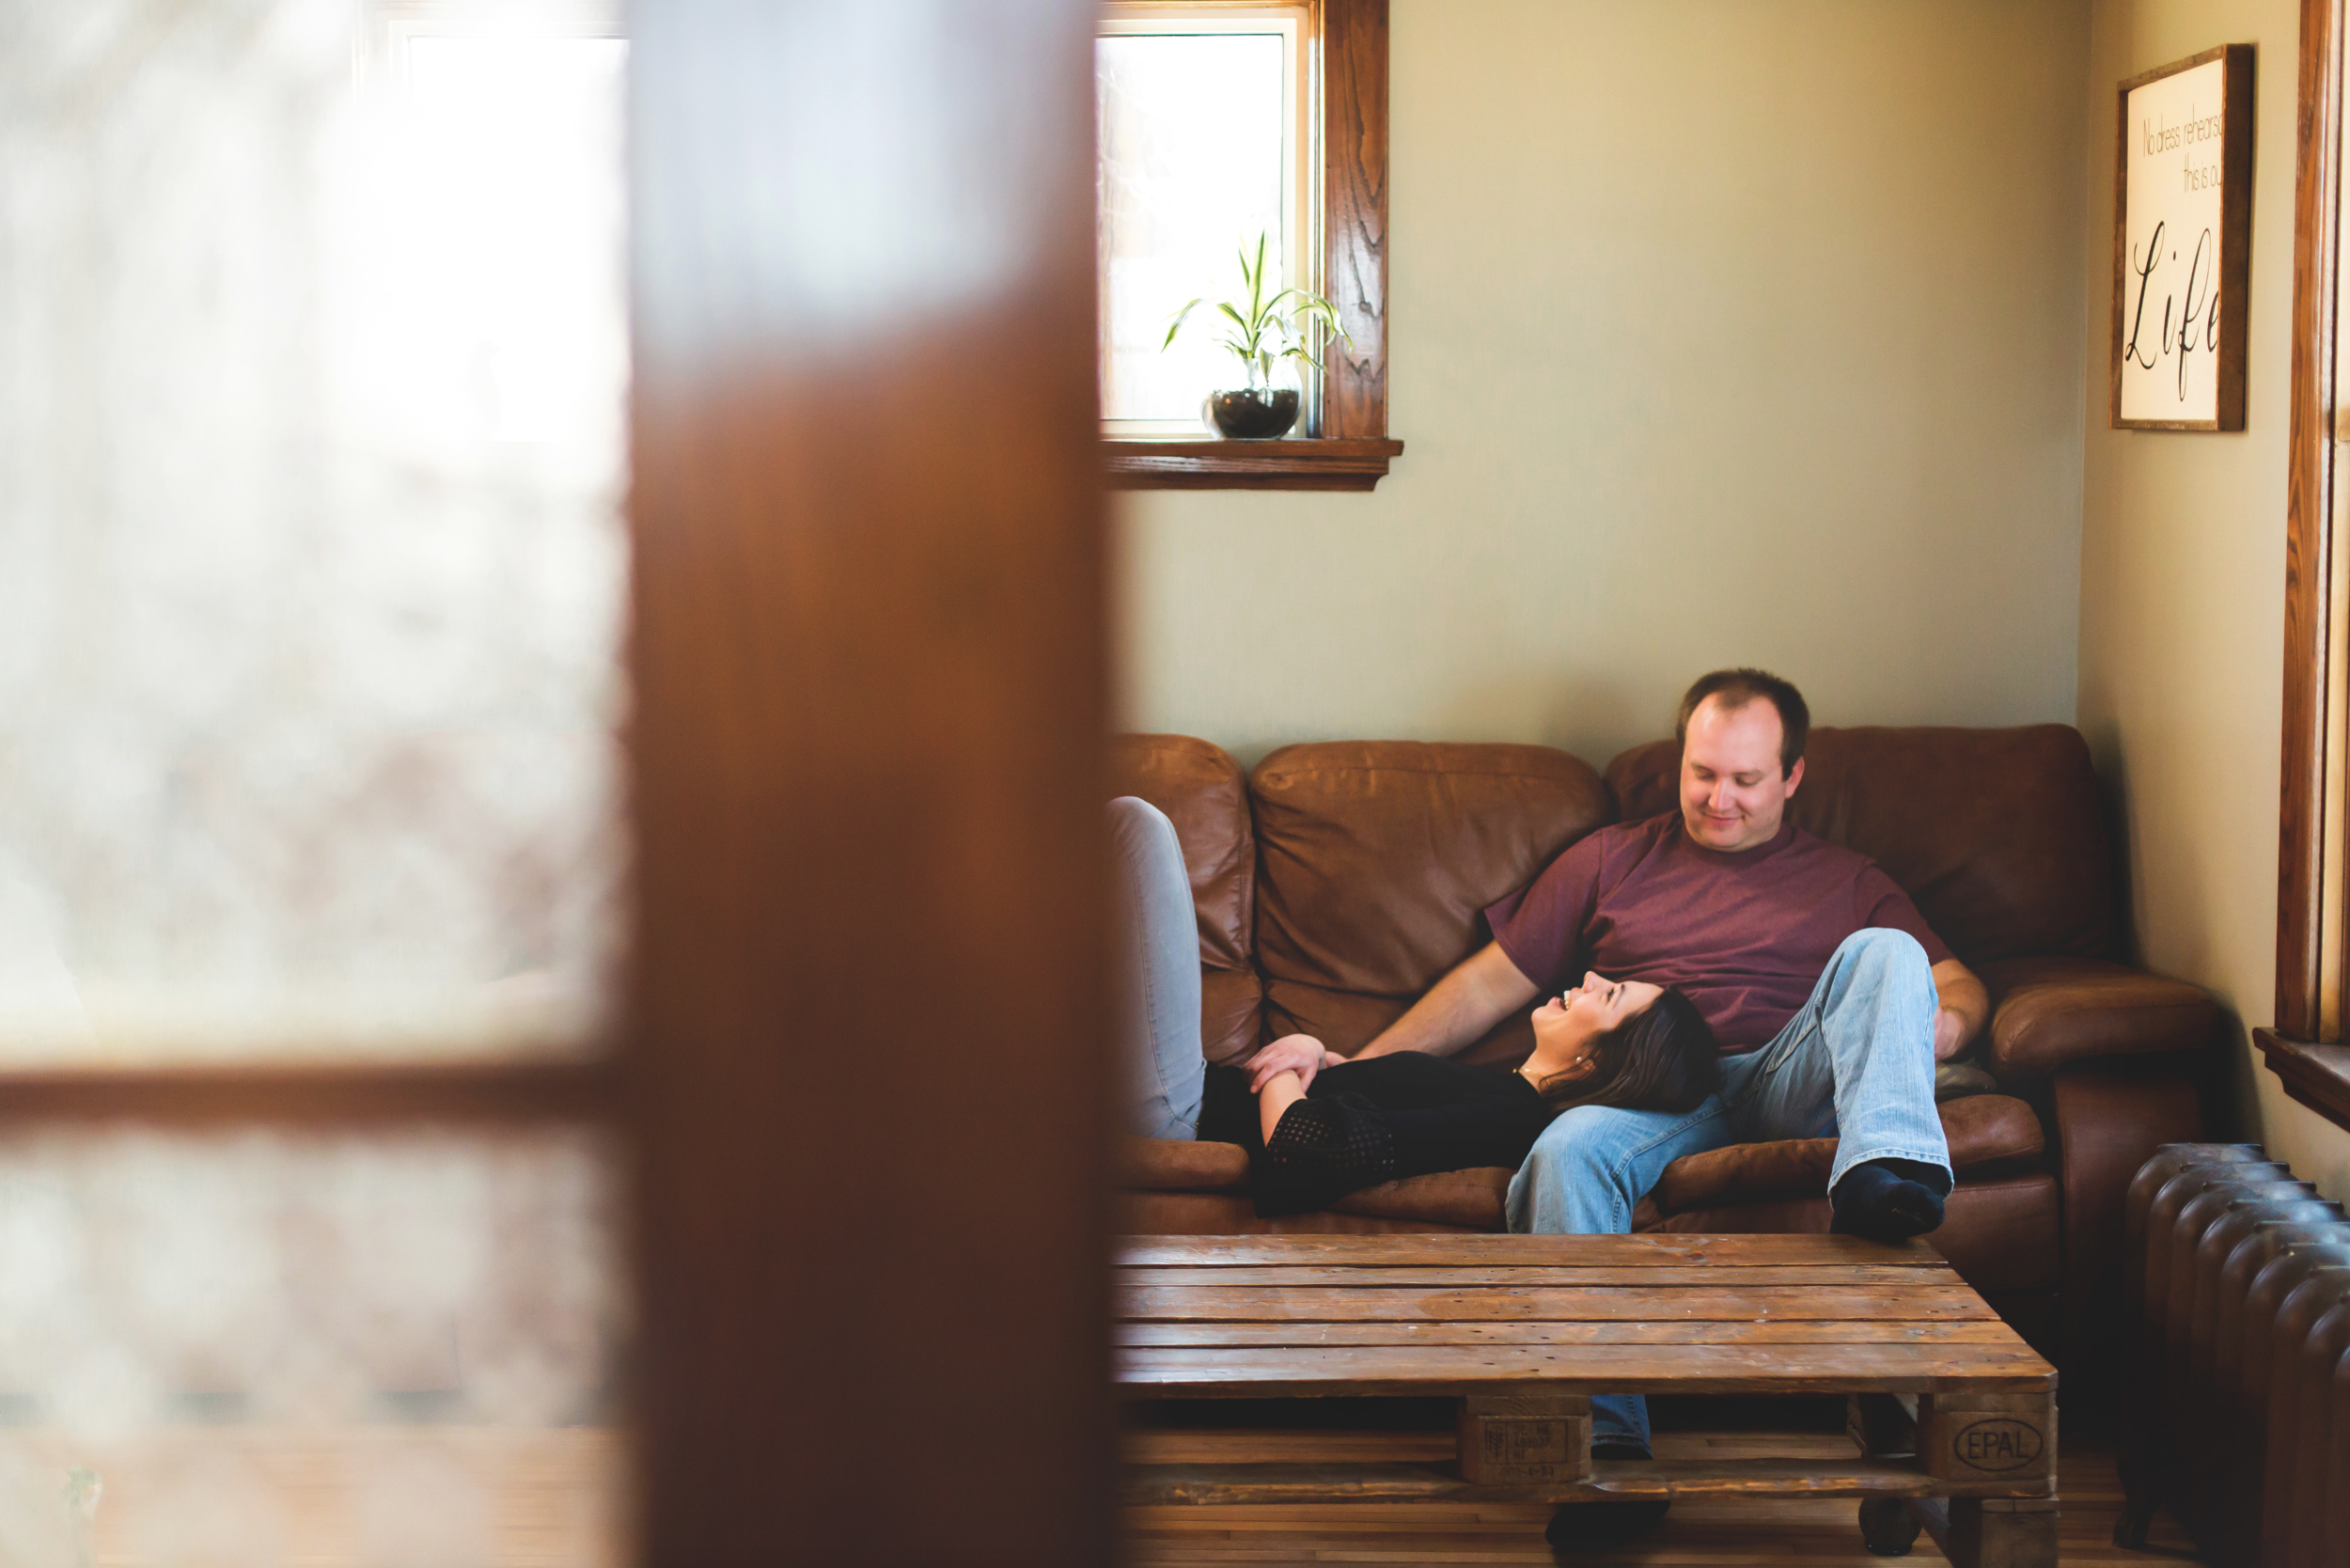 At-Home-Engagement-Session-Photography-Hamilton-Burlington-Niagara-Toronto-Wedding-Photography-Cozy-Engaged-Moments-by-Lauren-Photo-Image-6.png